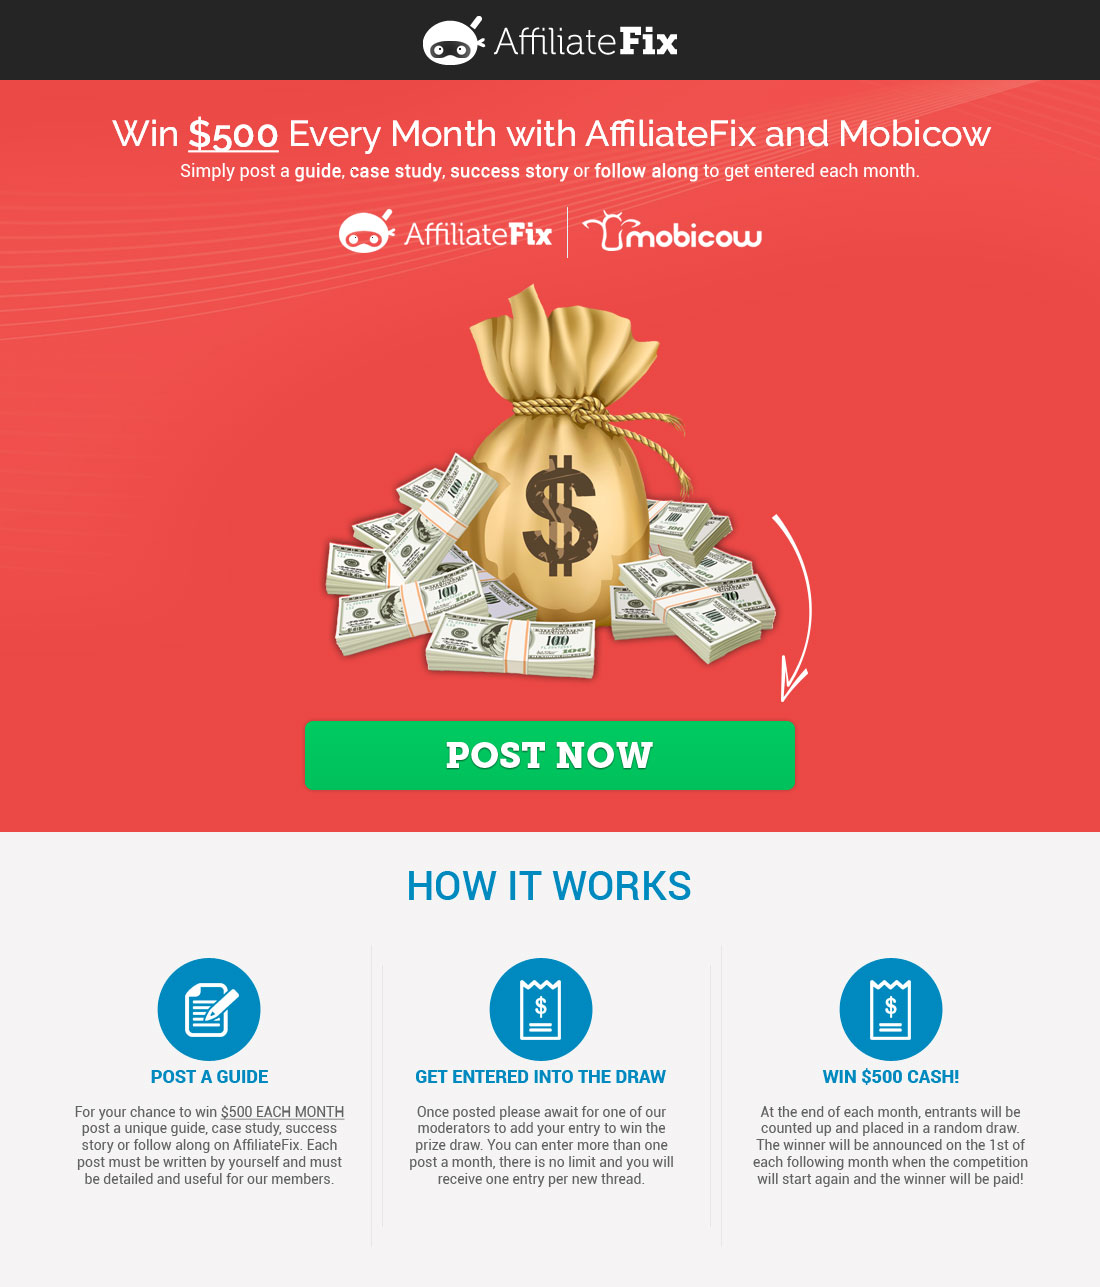 Win $500 Every Month! (Sponsored by Mobicow)